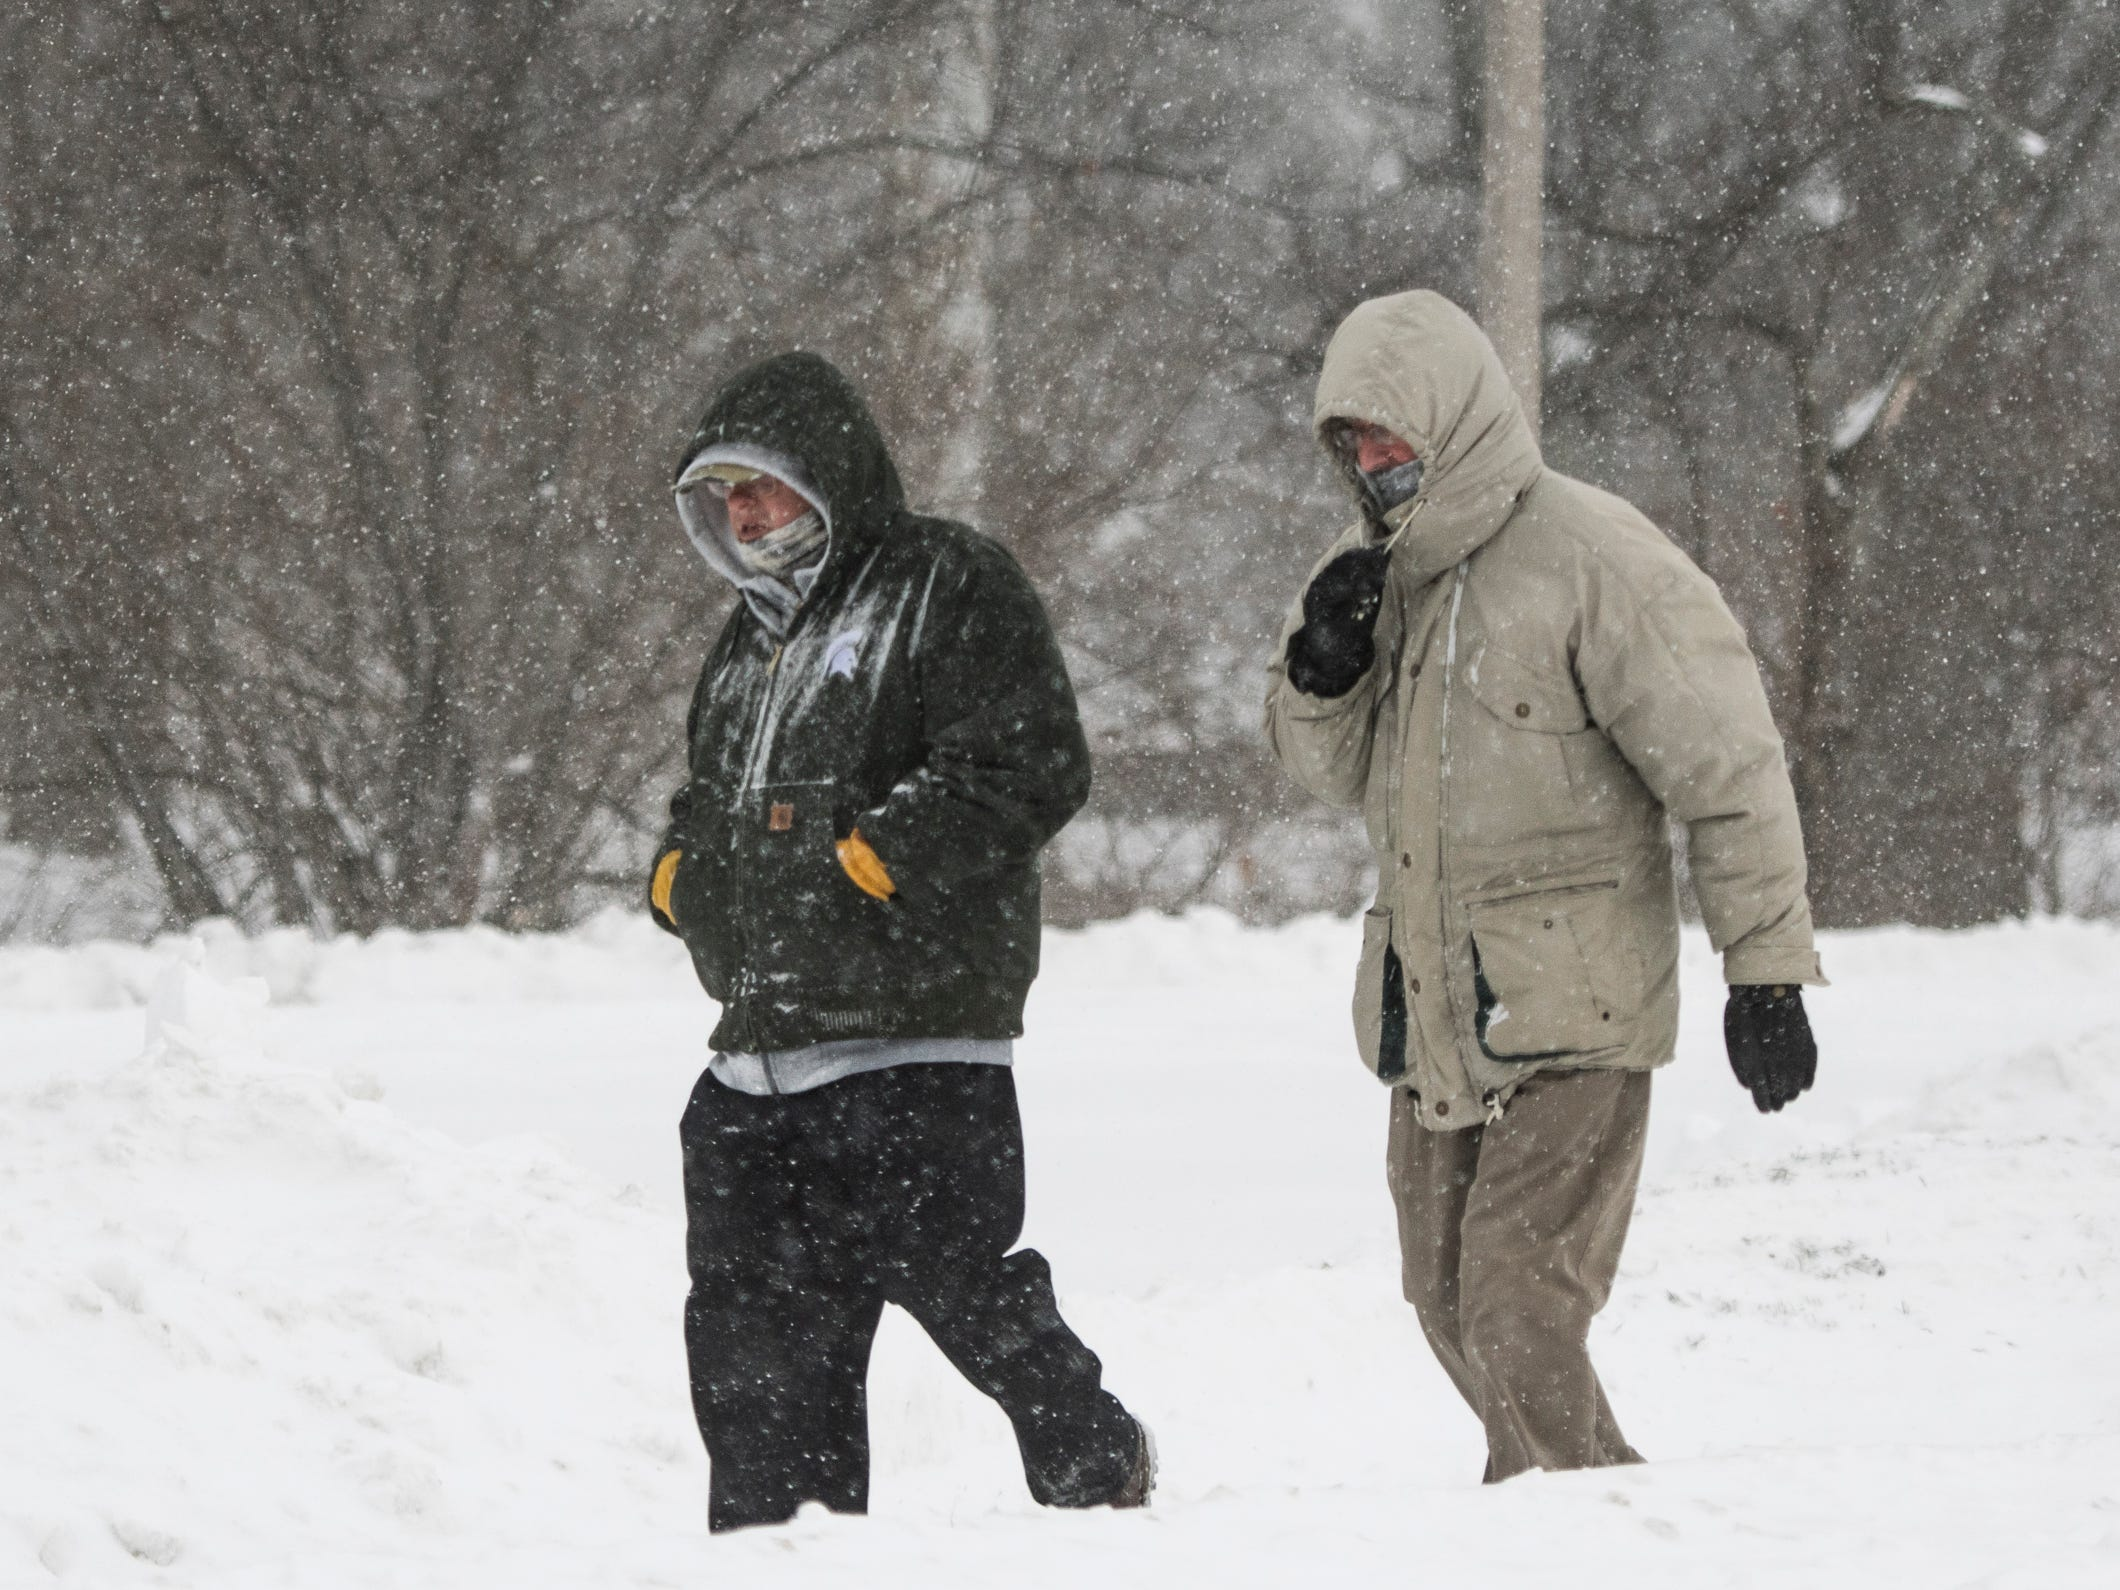 Two men walk on the campus of Michigan State University Tuesday, Jan. 29, 2019, in East Lansing, Michigan.  MSU has called off classes tommorow due to bitter temperatures.  [USA Today Network/Matthew Dae Smith/Lansing State Journal]